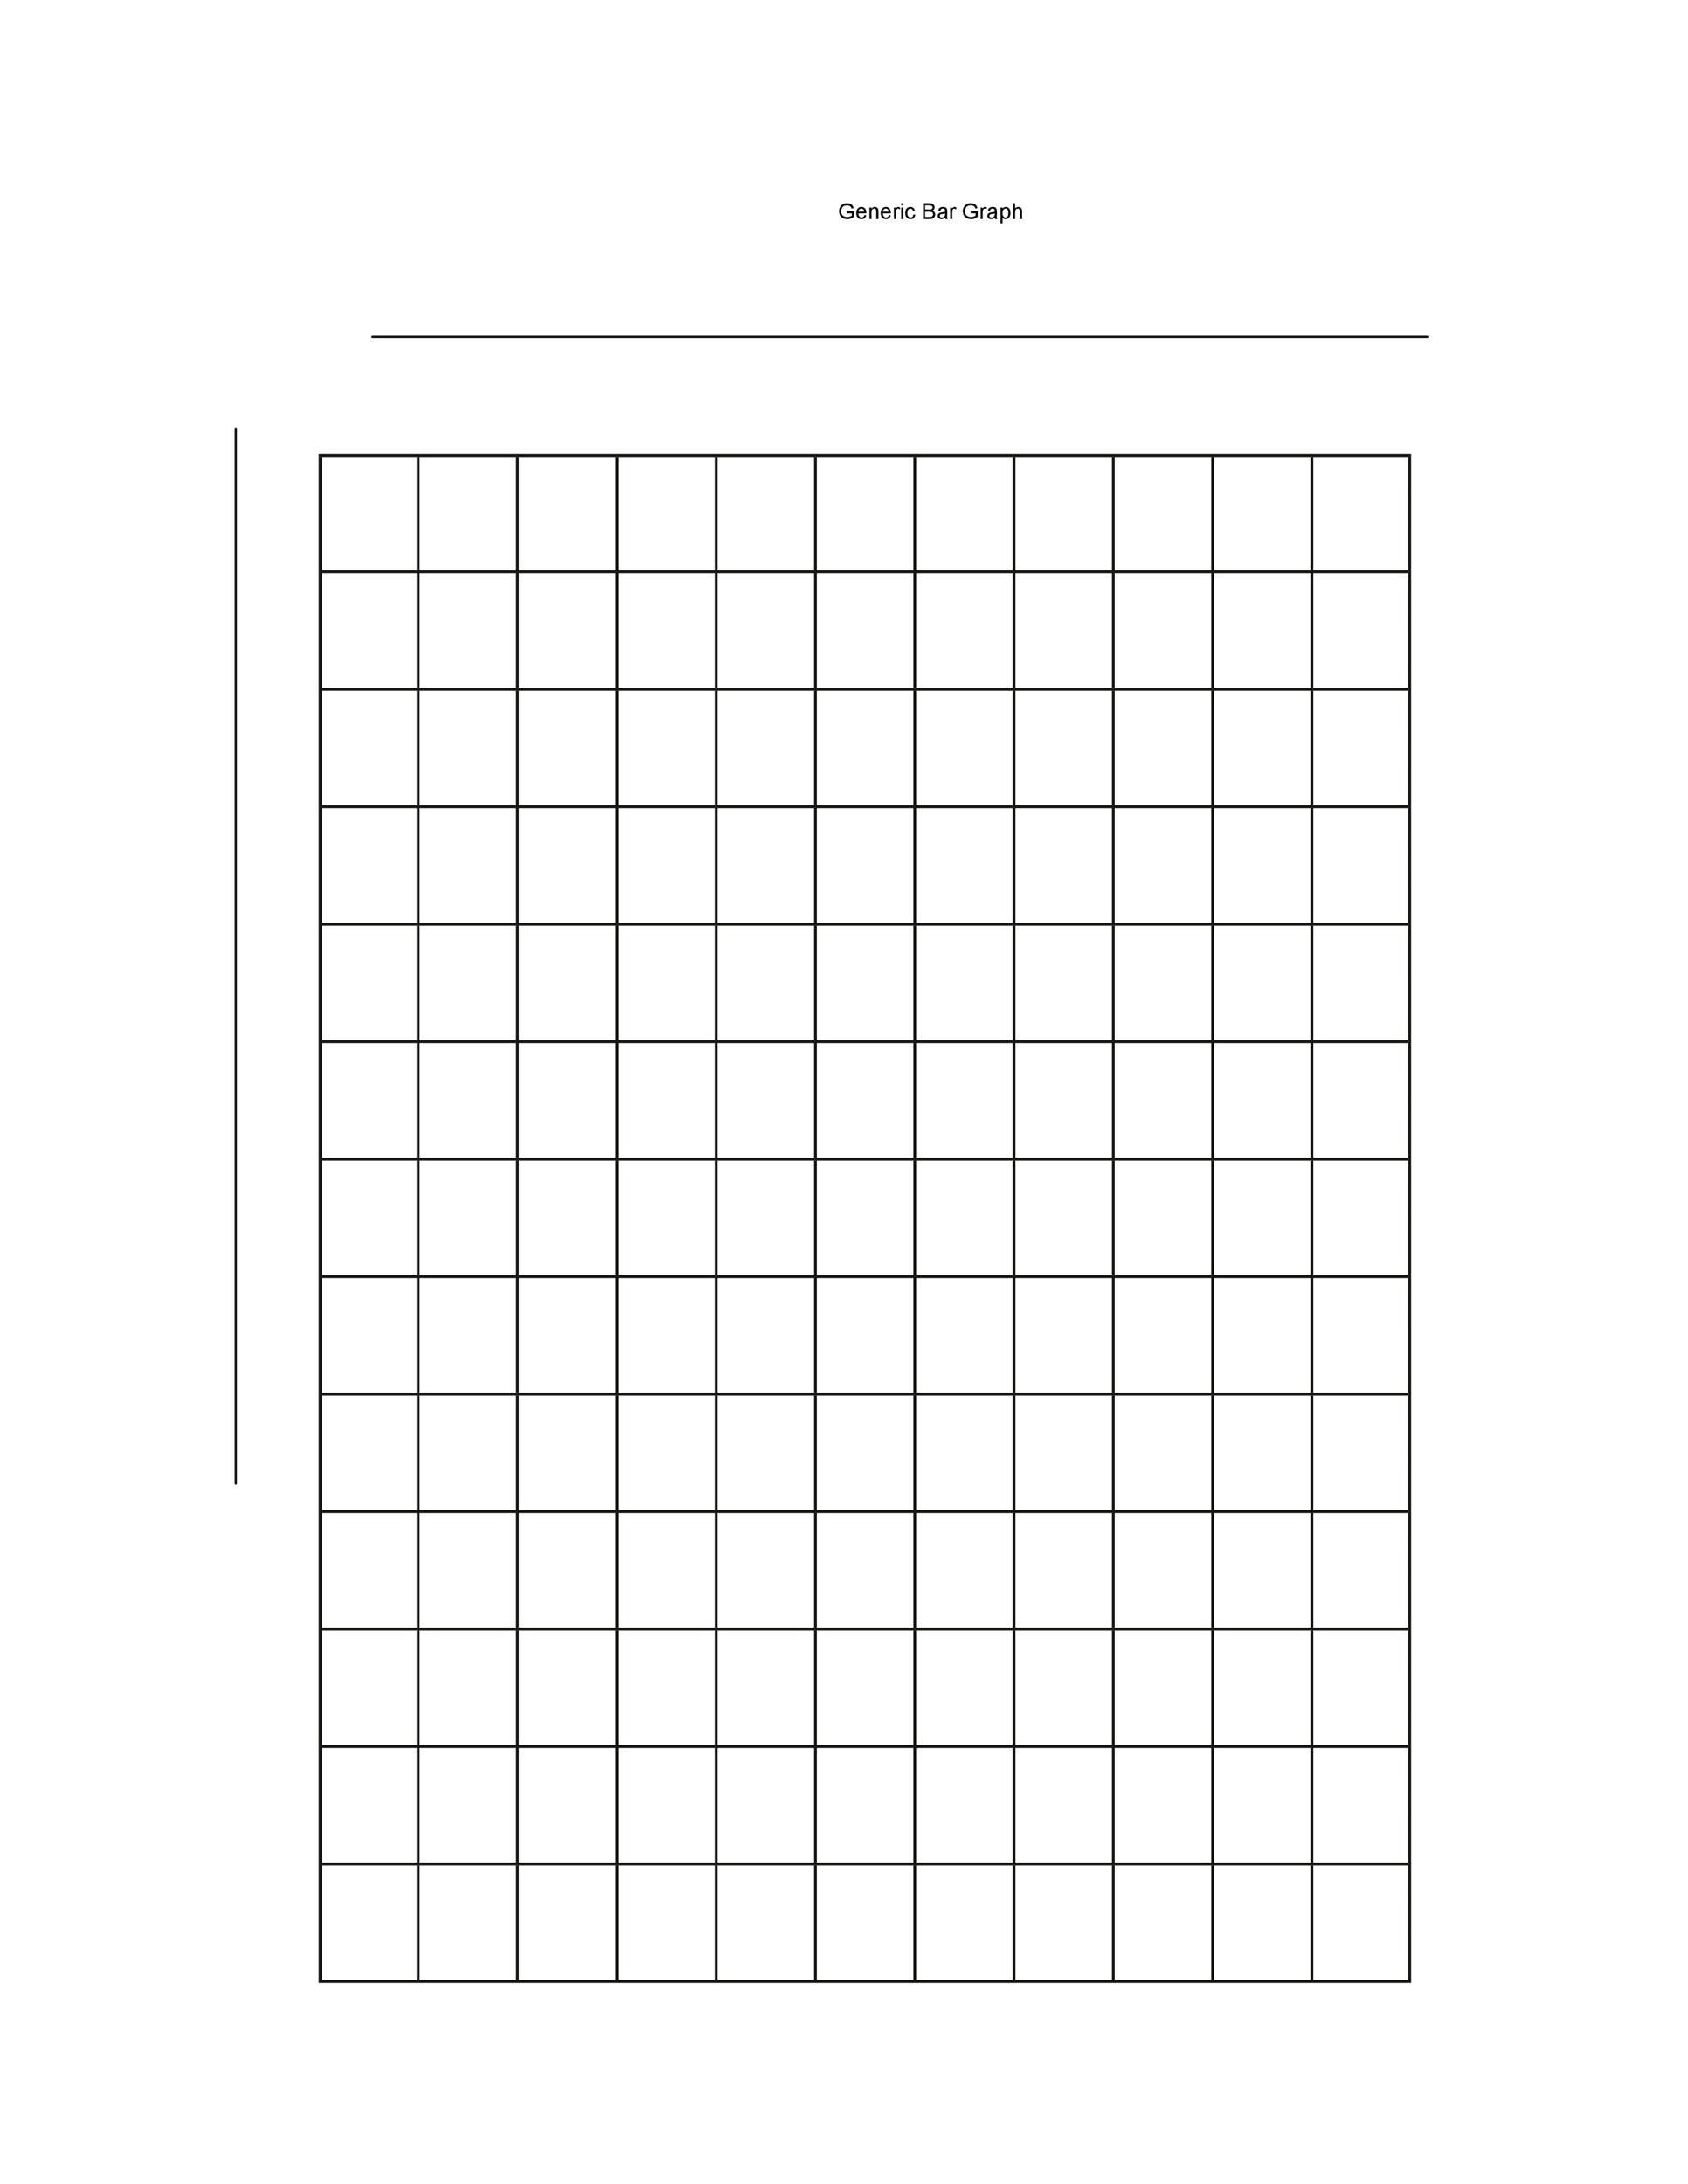 Double Bar Graphs Worksheet 41 Blank Bar Graph Templates